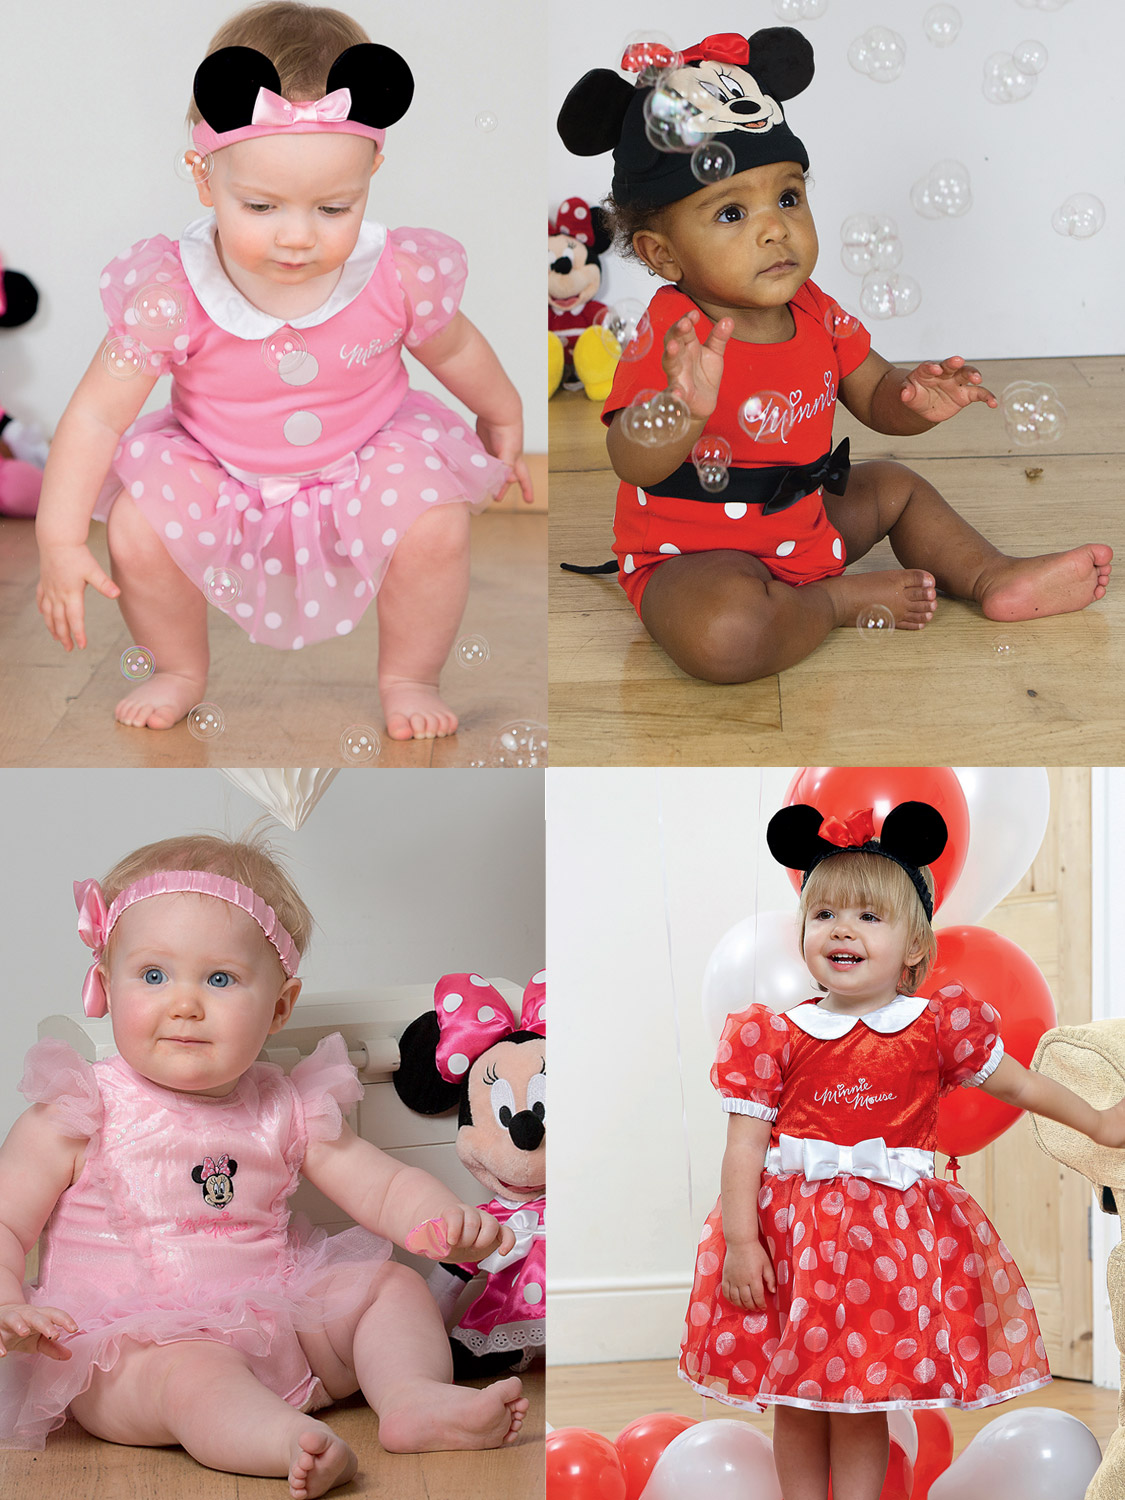 LICENSED CHILD GIRLS PINK MINNIE MOUSE FANCY DRESS HALLOWEEN COSTUME